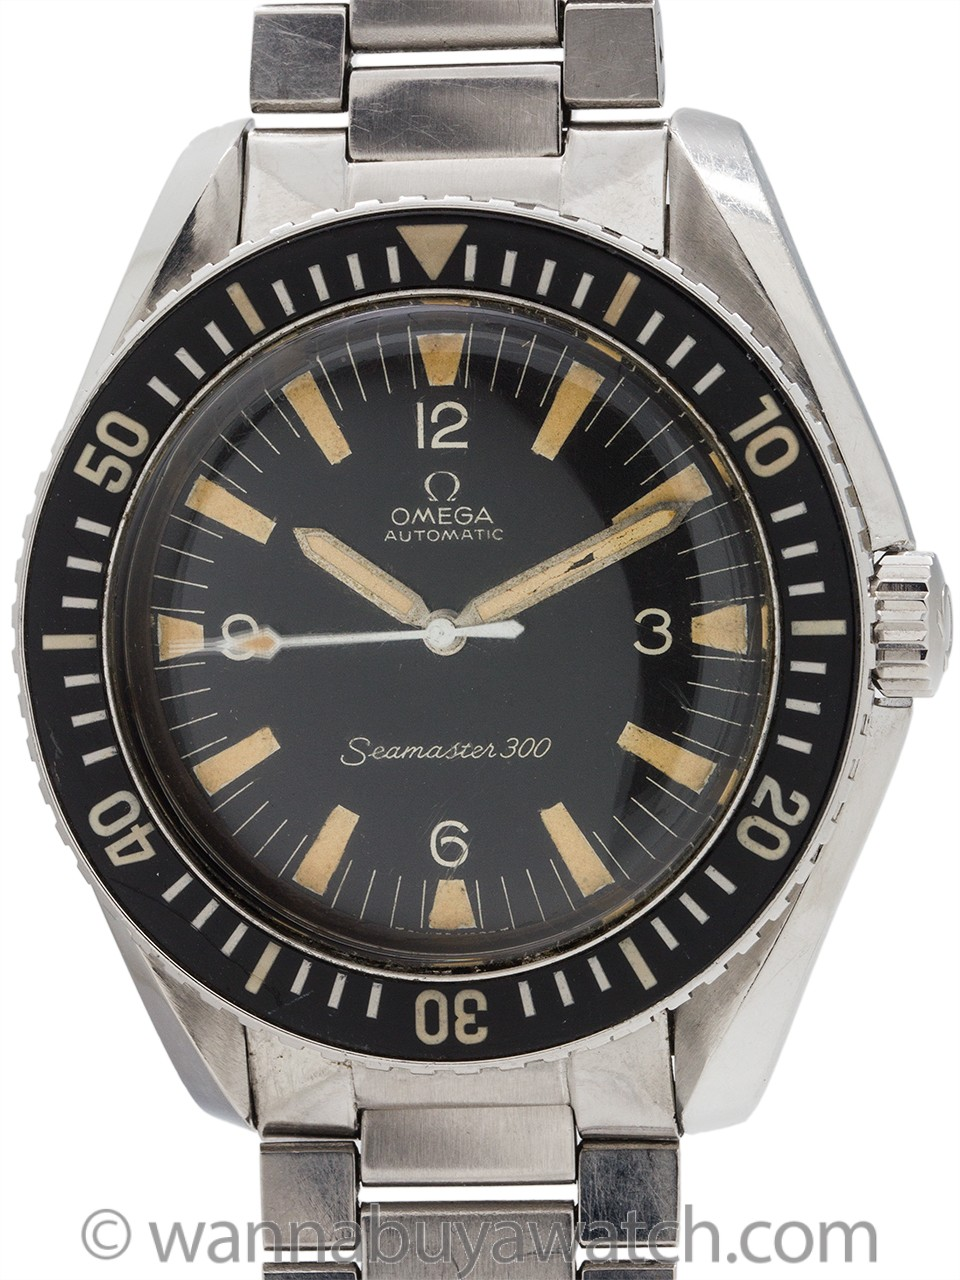 Omega Seamaster 300 ref 165.024 circa 1966 Exceptional!